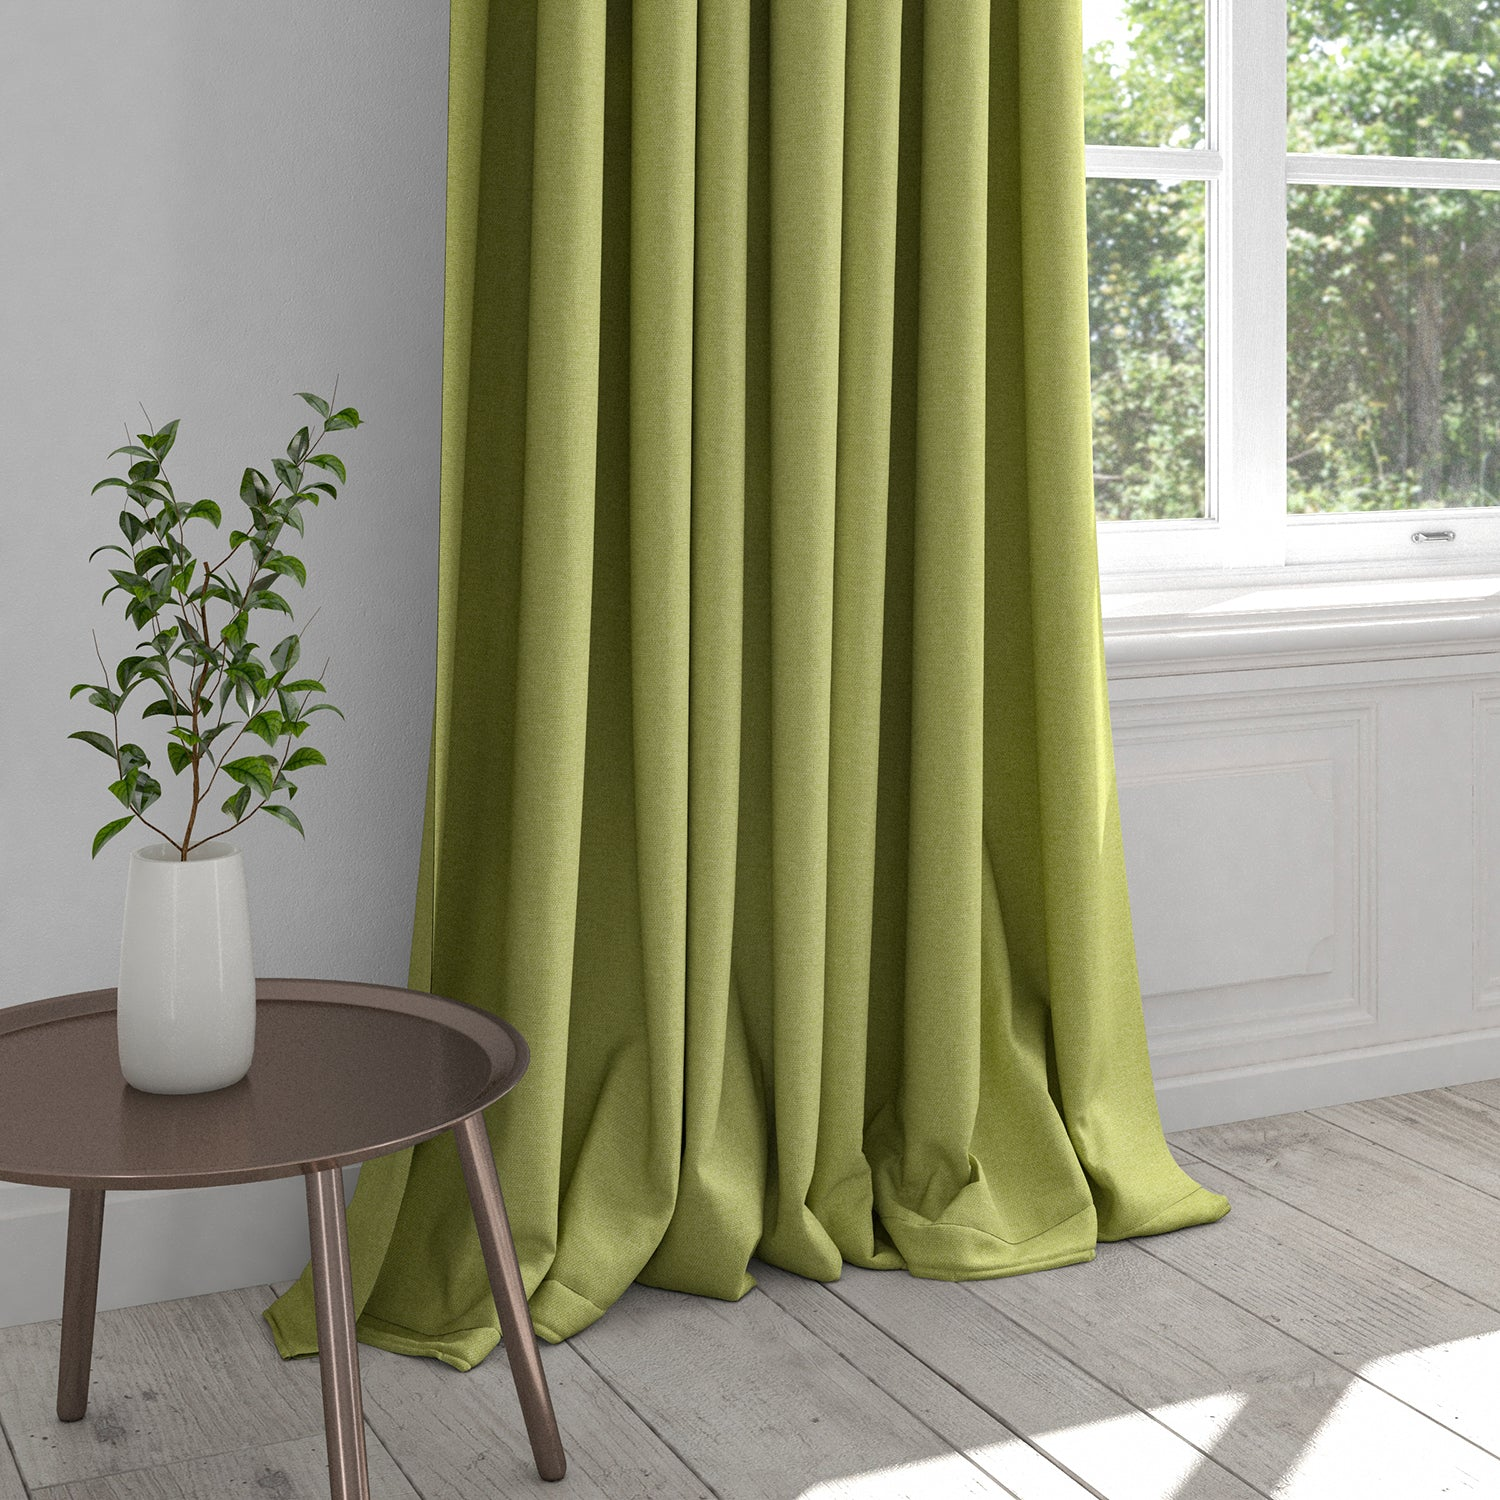 Plain lime green curtain in a cotton fabric